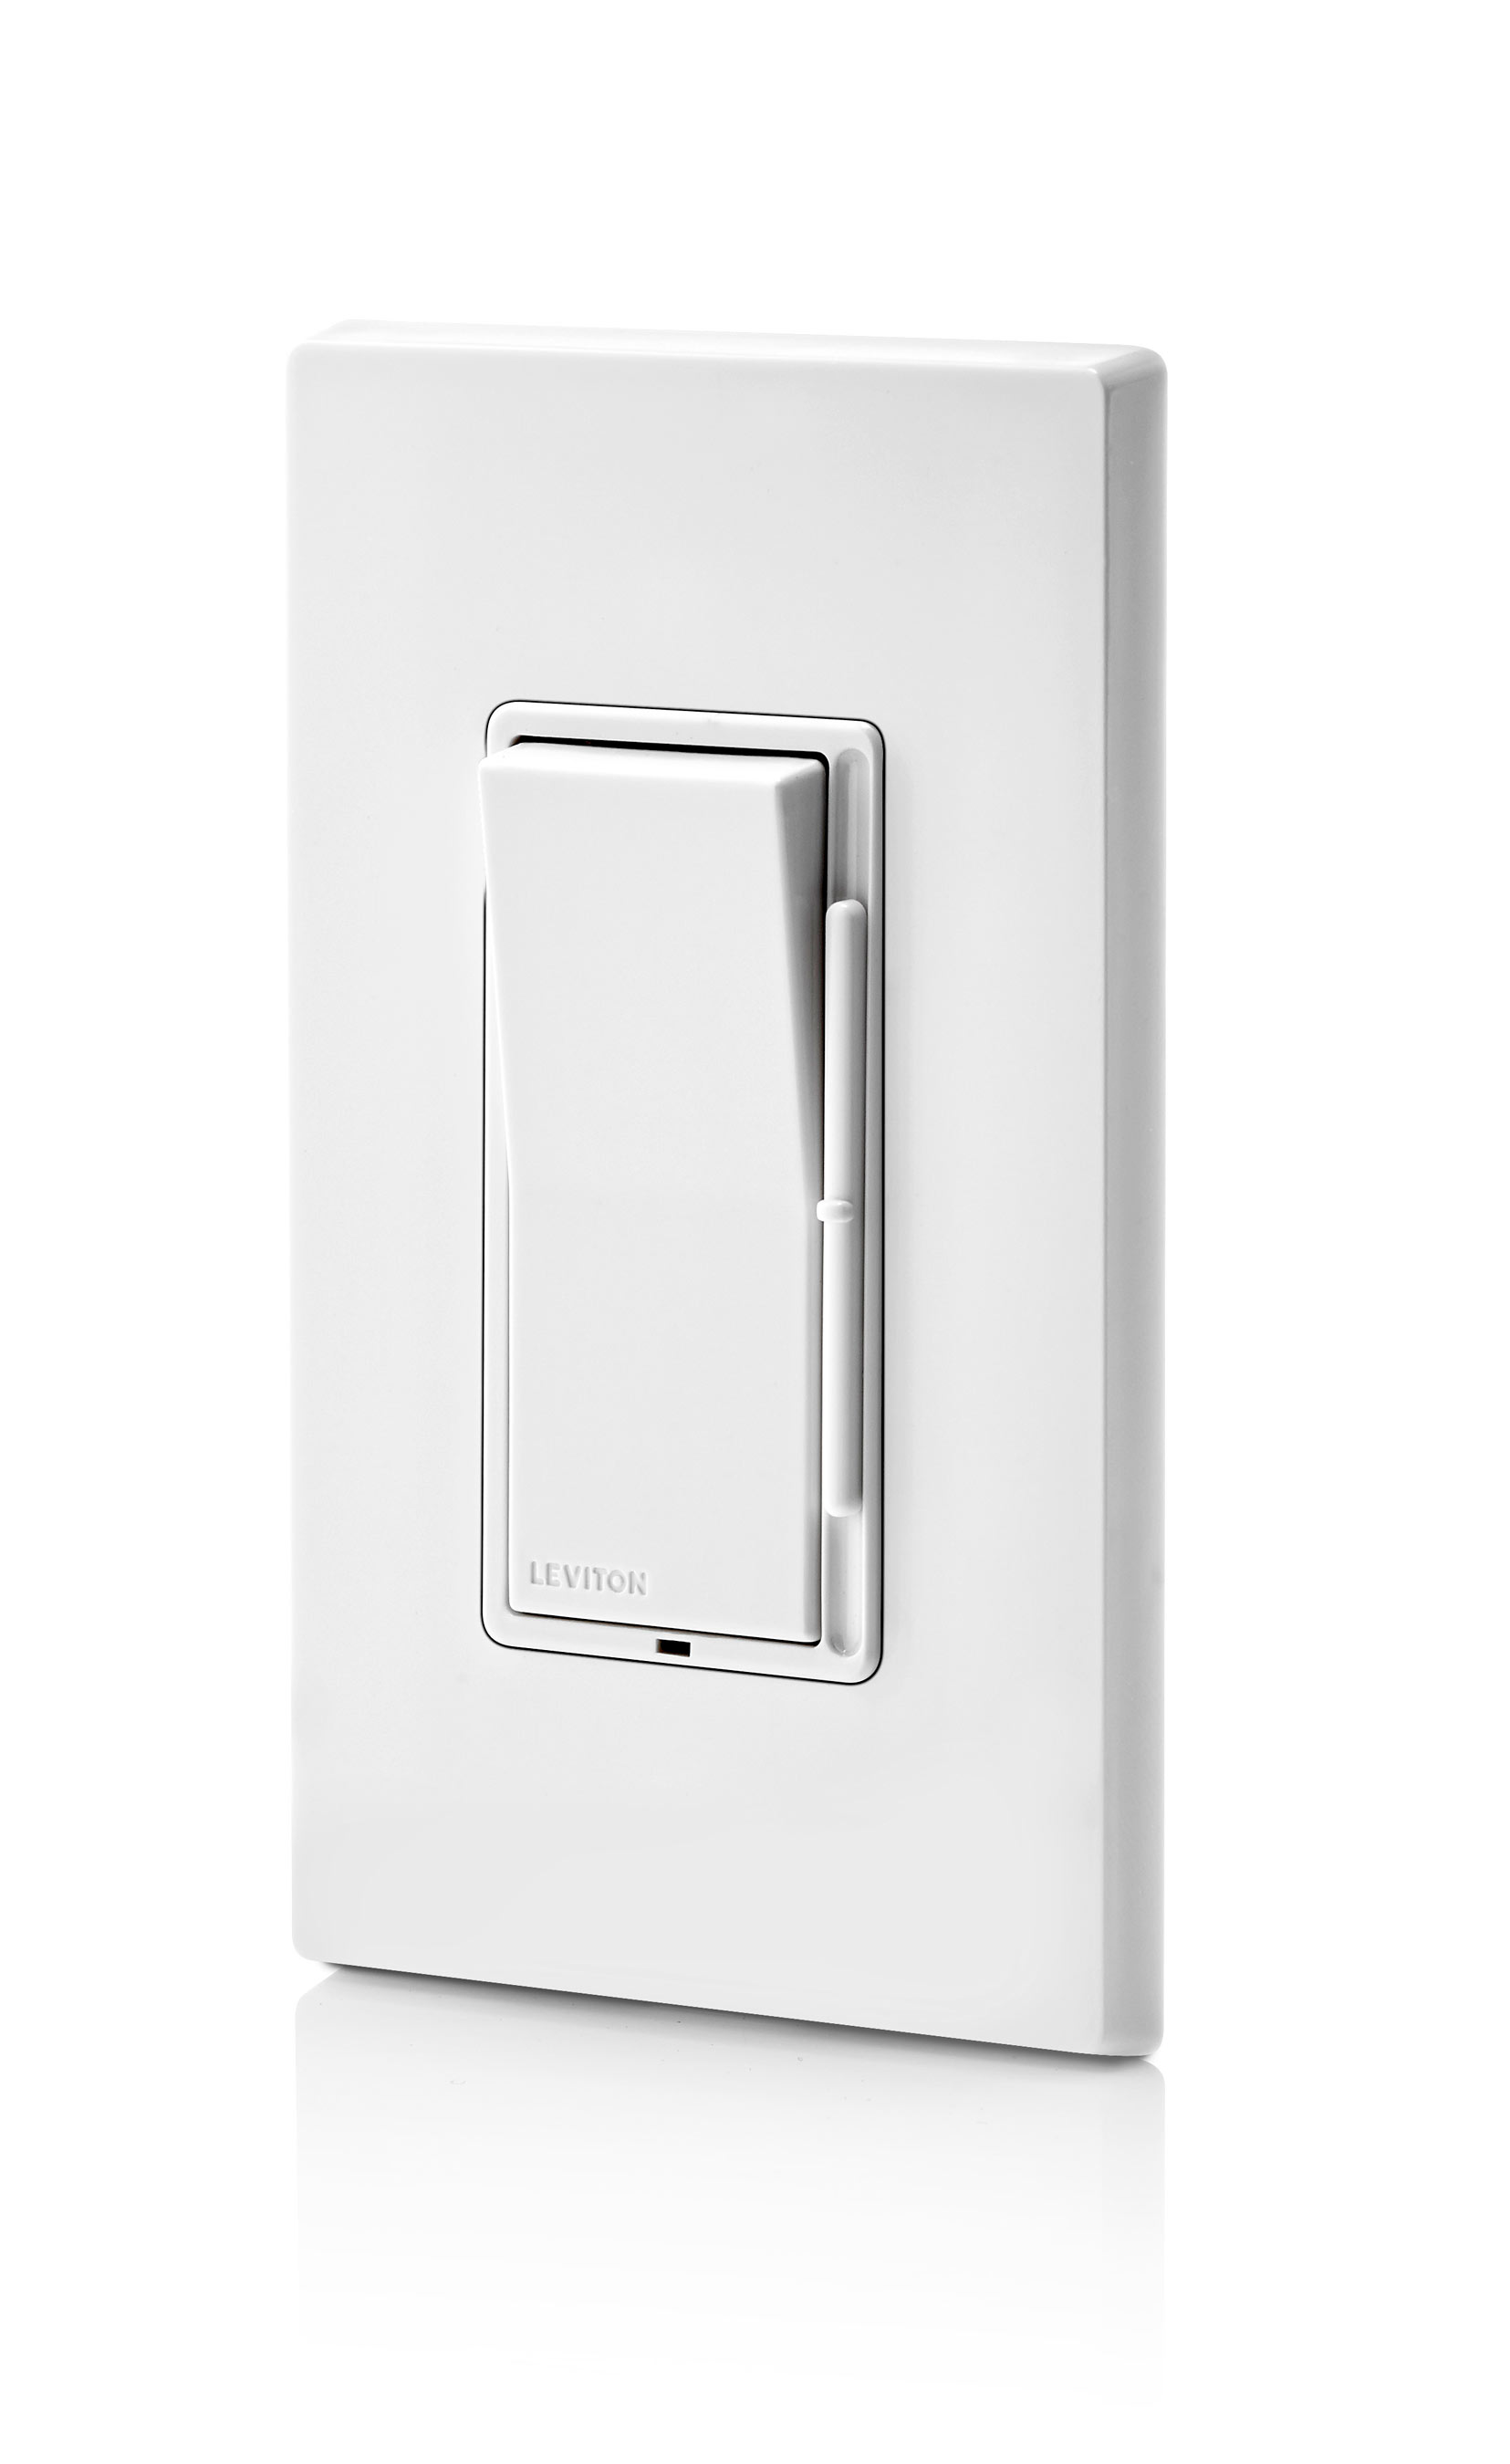 Leviton Expands Decora® Product Offering with Rocker Slide Controls